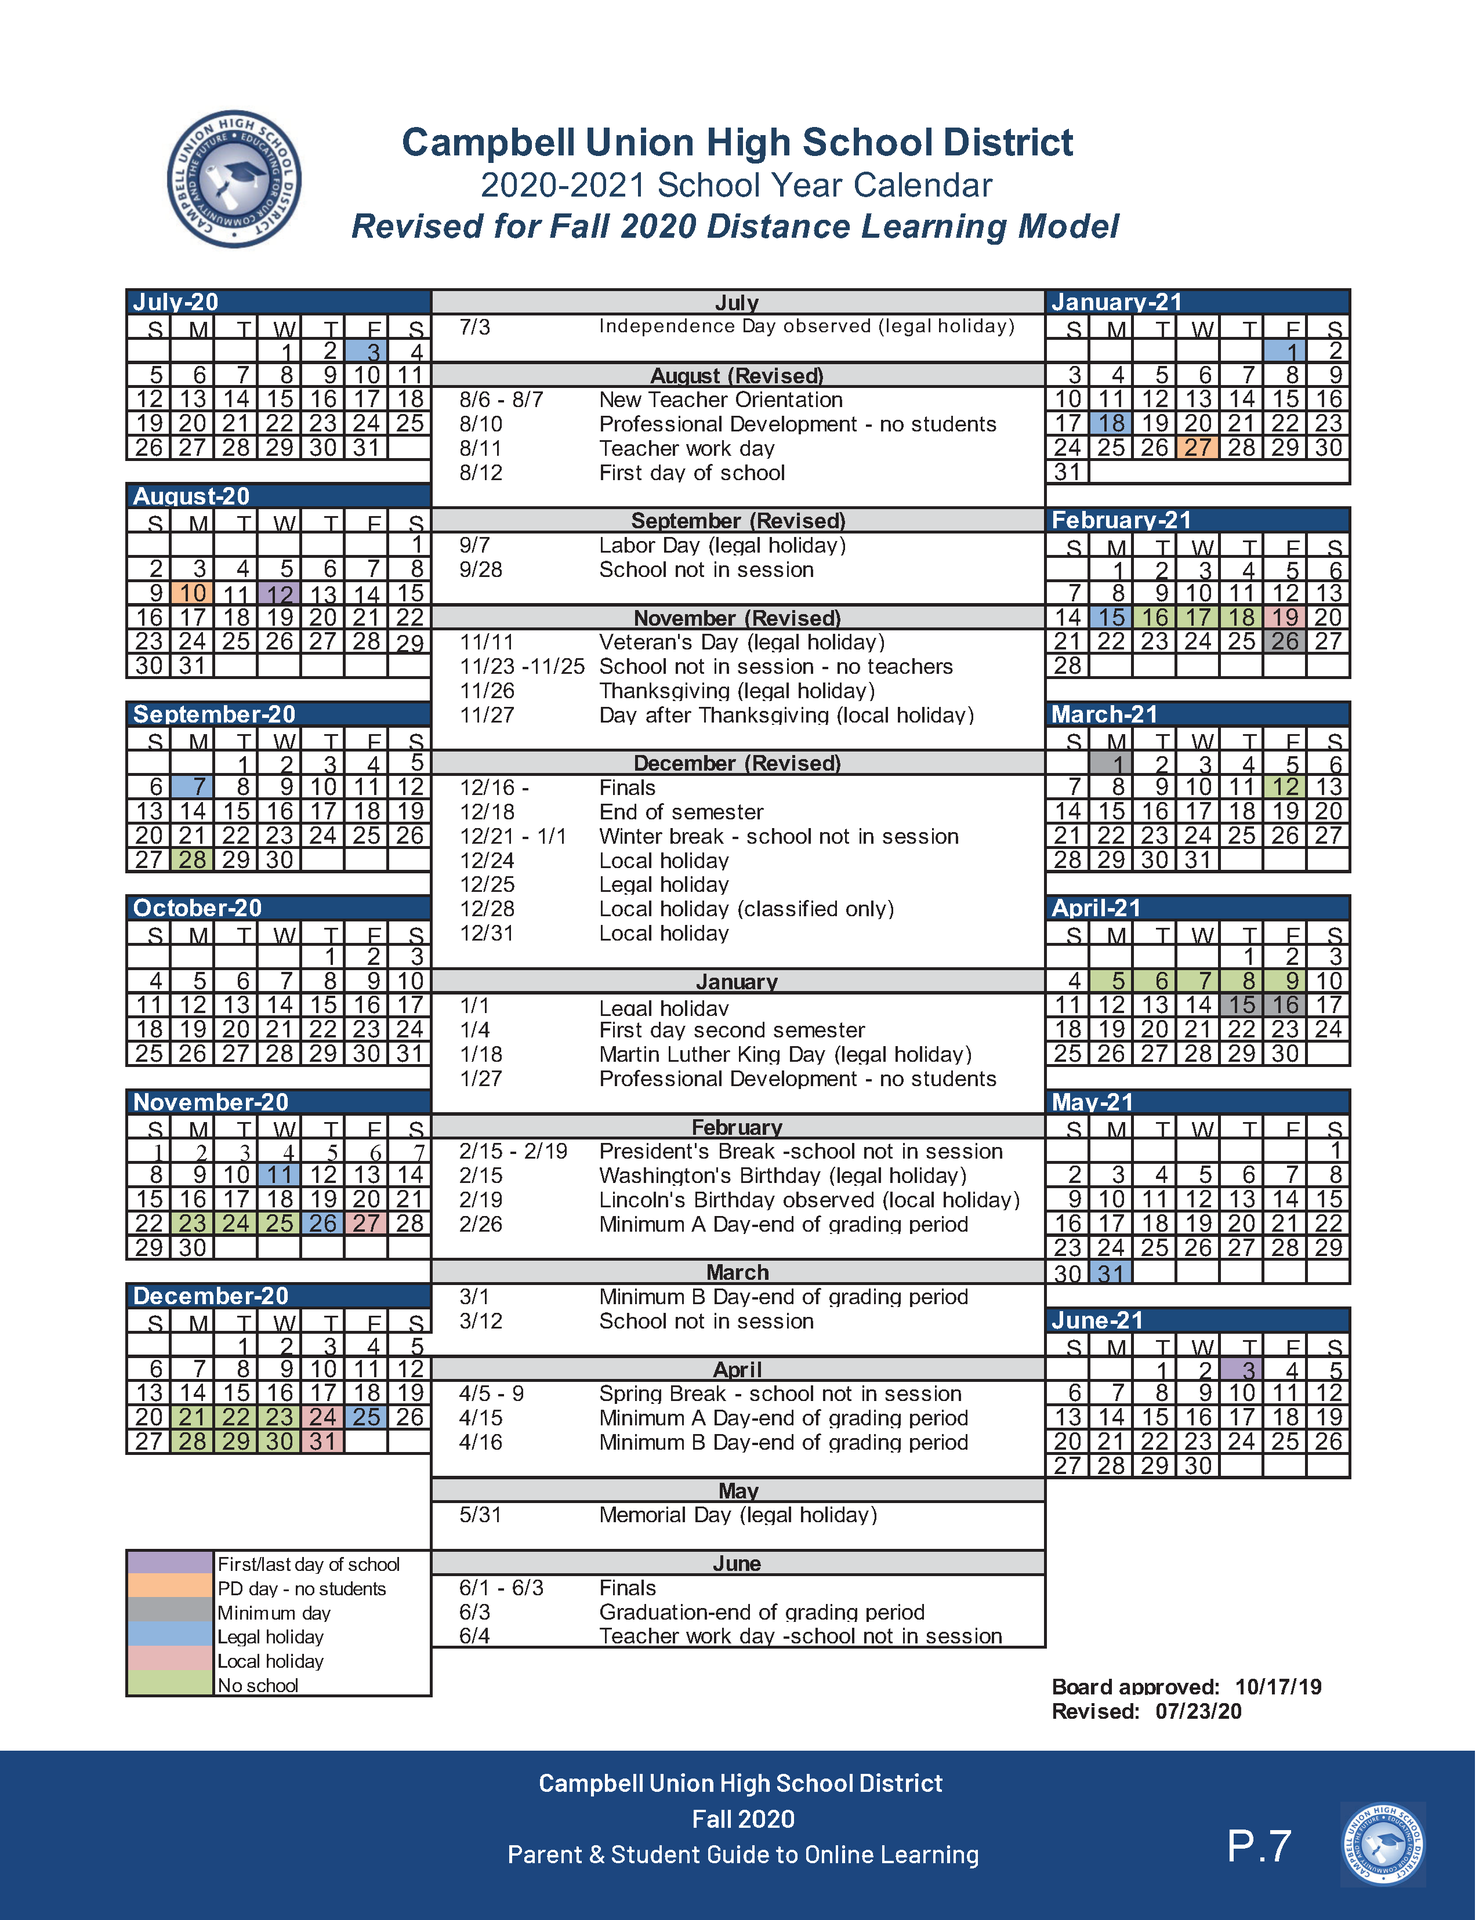 image of 2020-21 cuhsd revised academic calendar